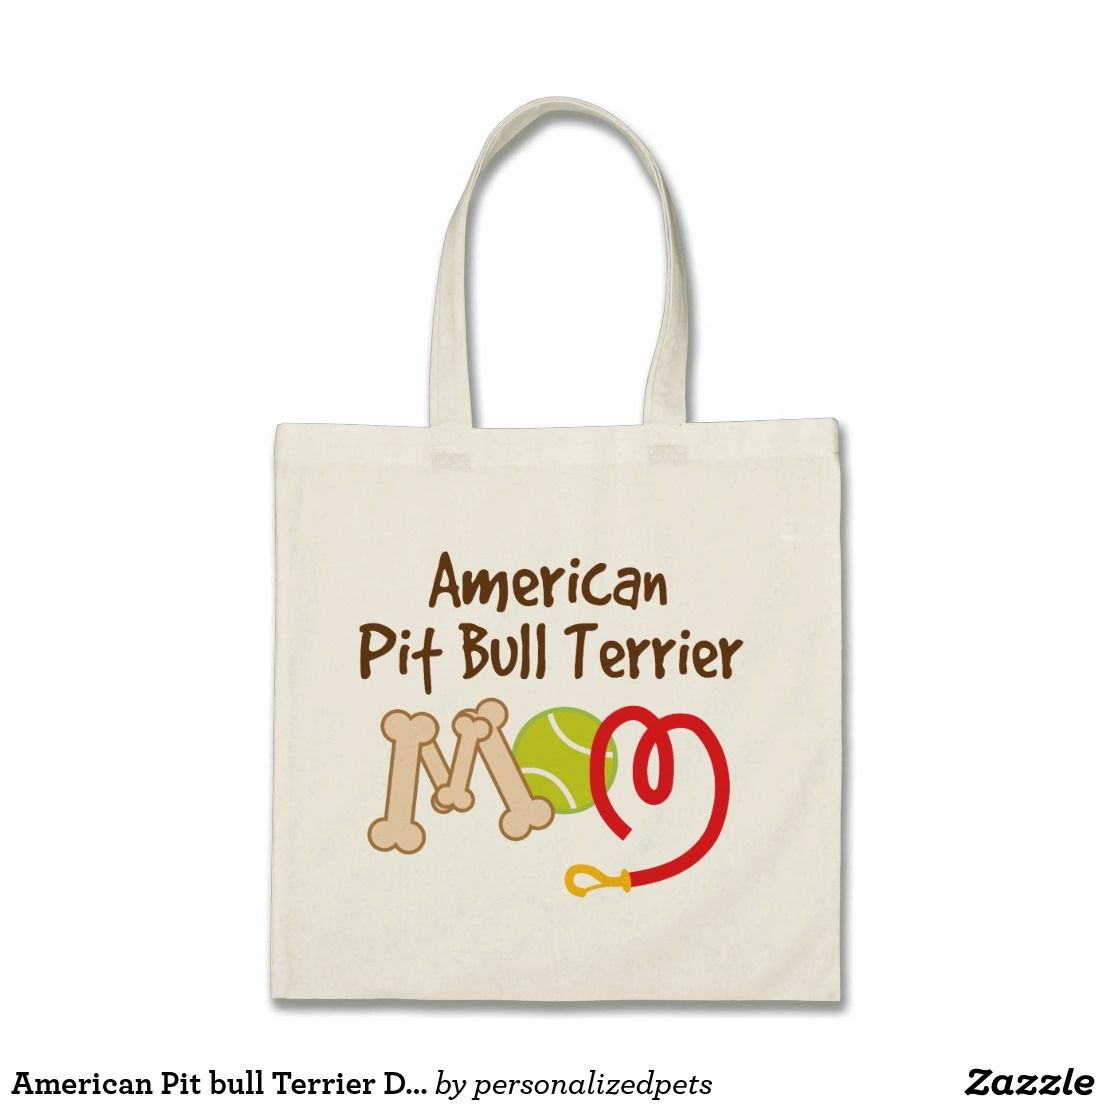 American Pit bull Terrier Dog Breed Mum Gift Tote Bag